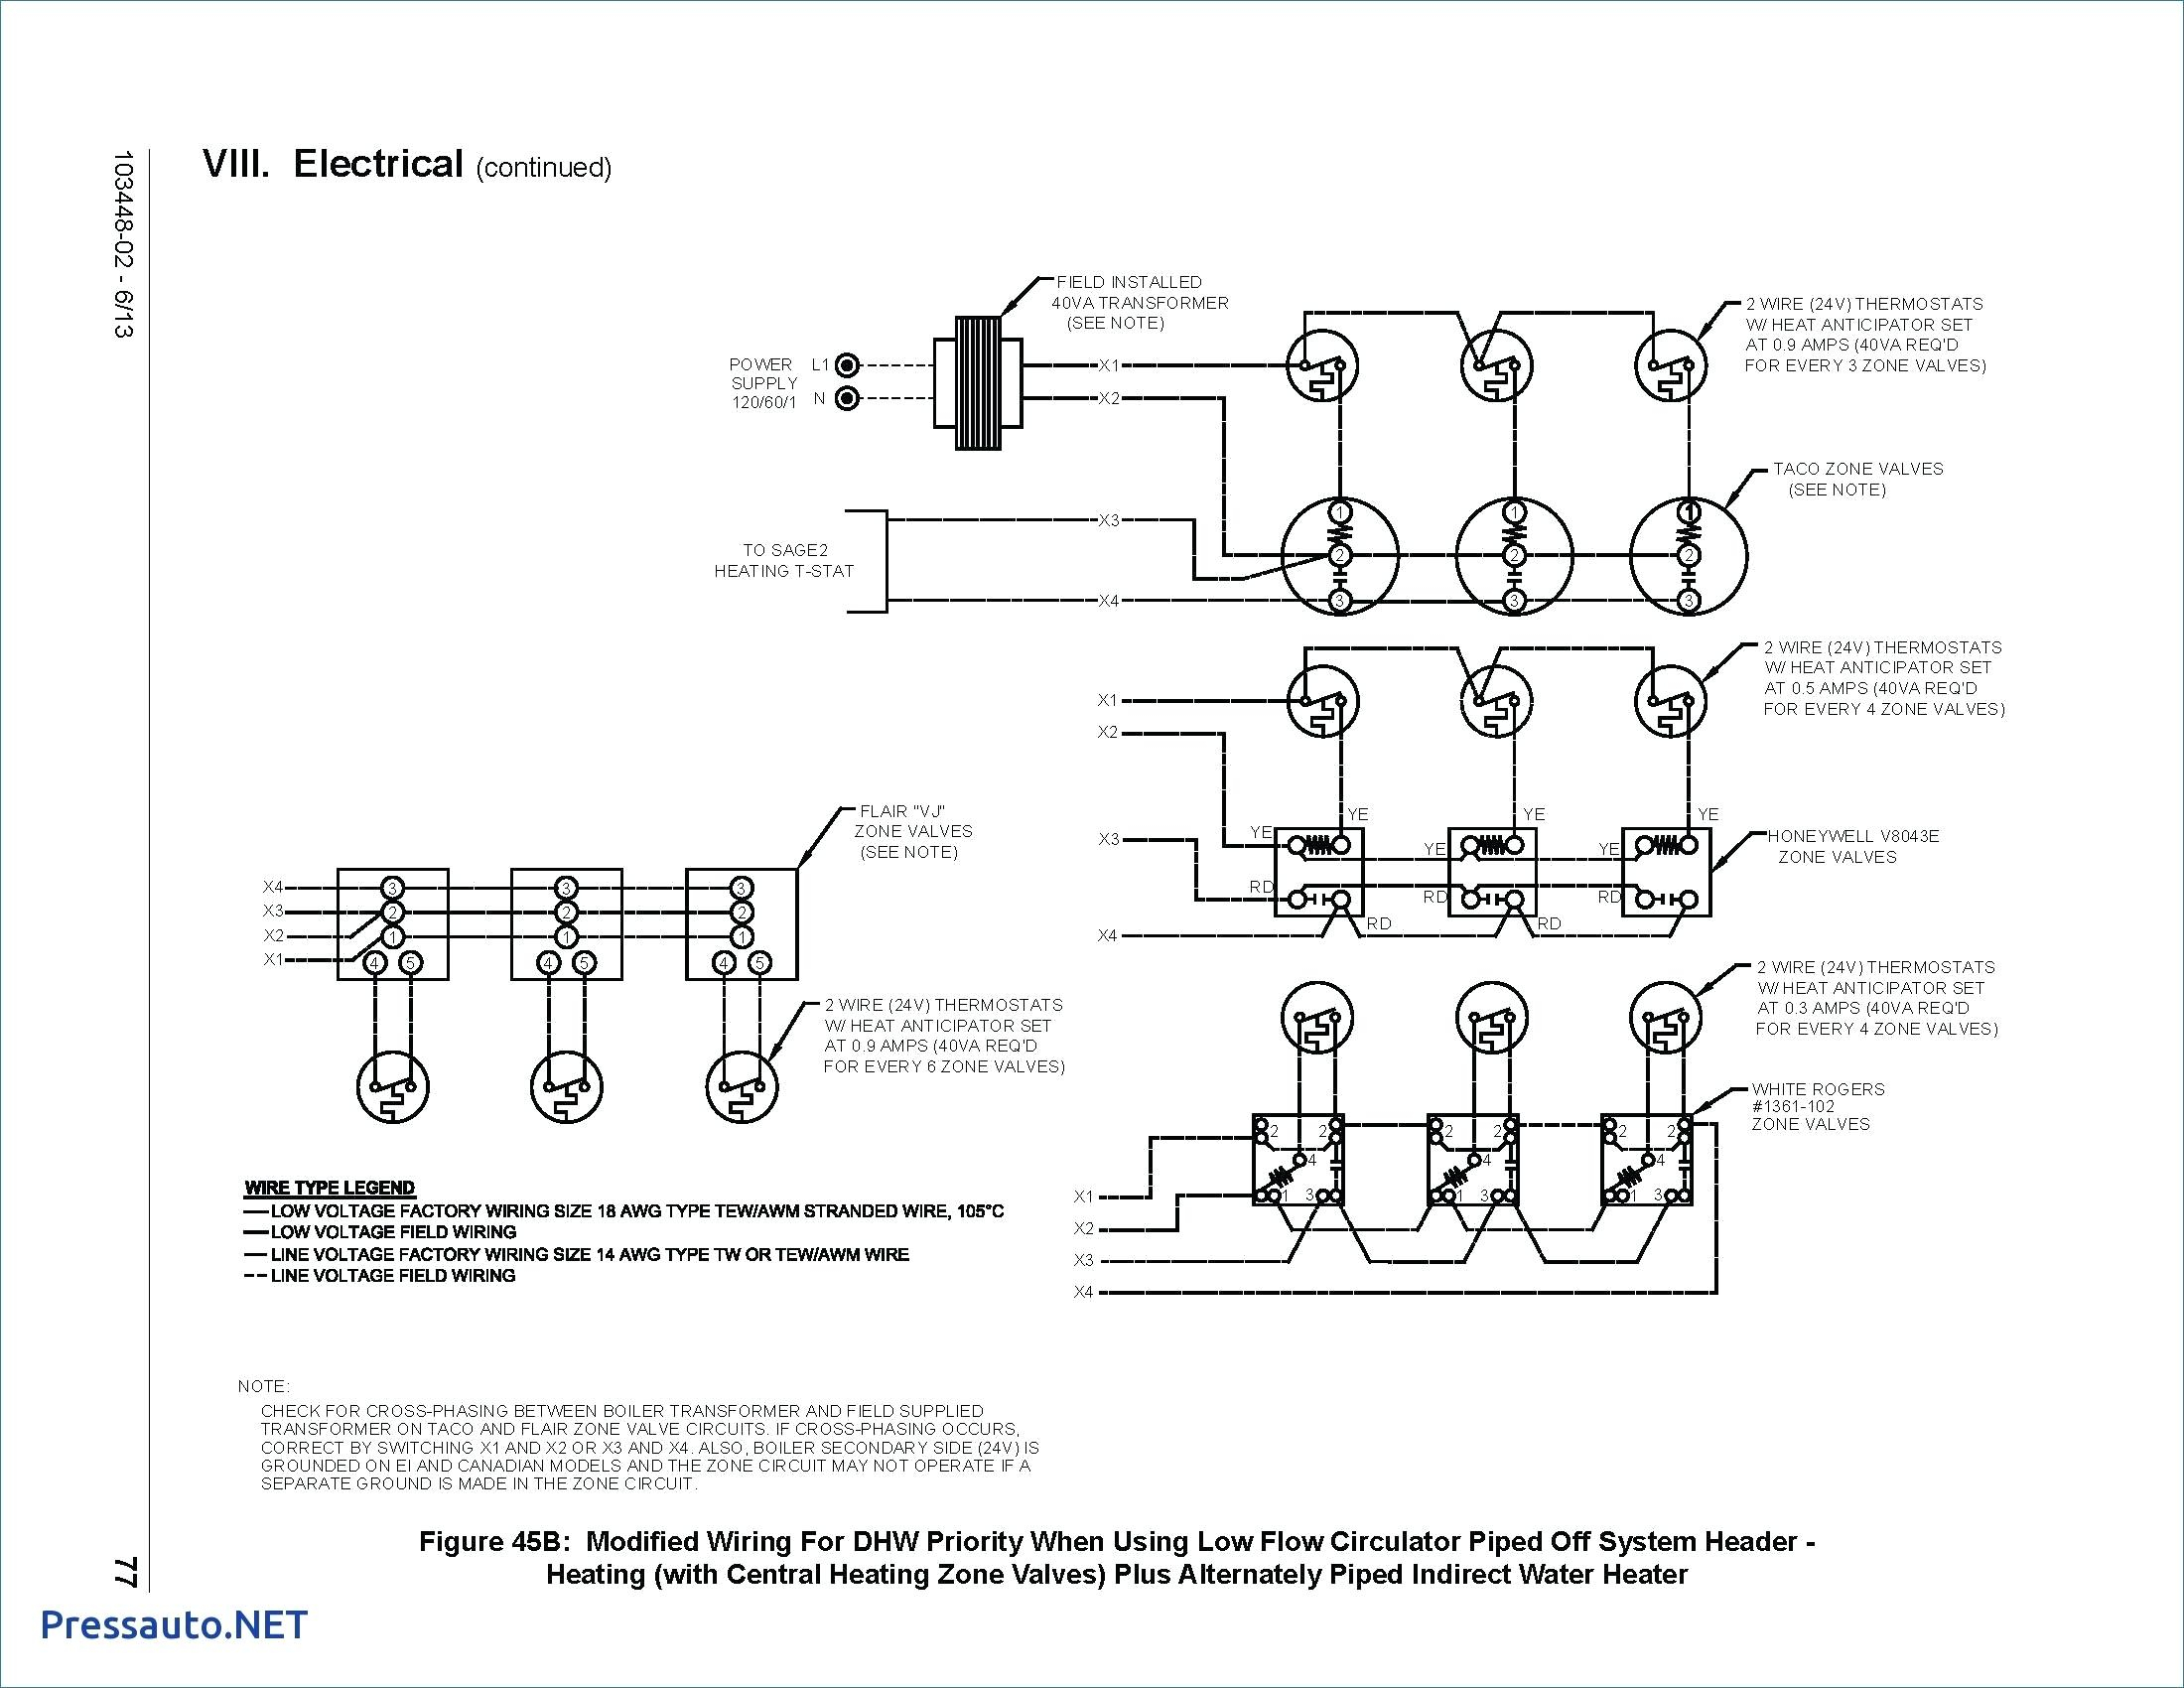 Taco Cartridge Circulator Wiring Diagram Diagram Base Website Wiring Diagram  - PIGHEARTDIAGRAM.EDOCENTRICO.ITpigheartdiagram.edocentrico.it